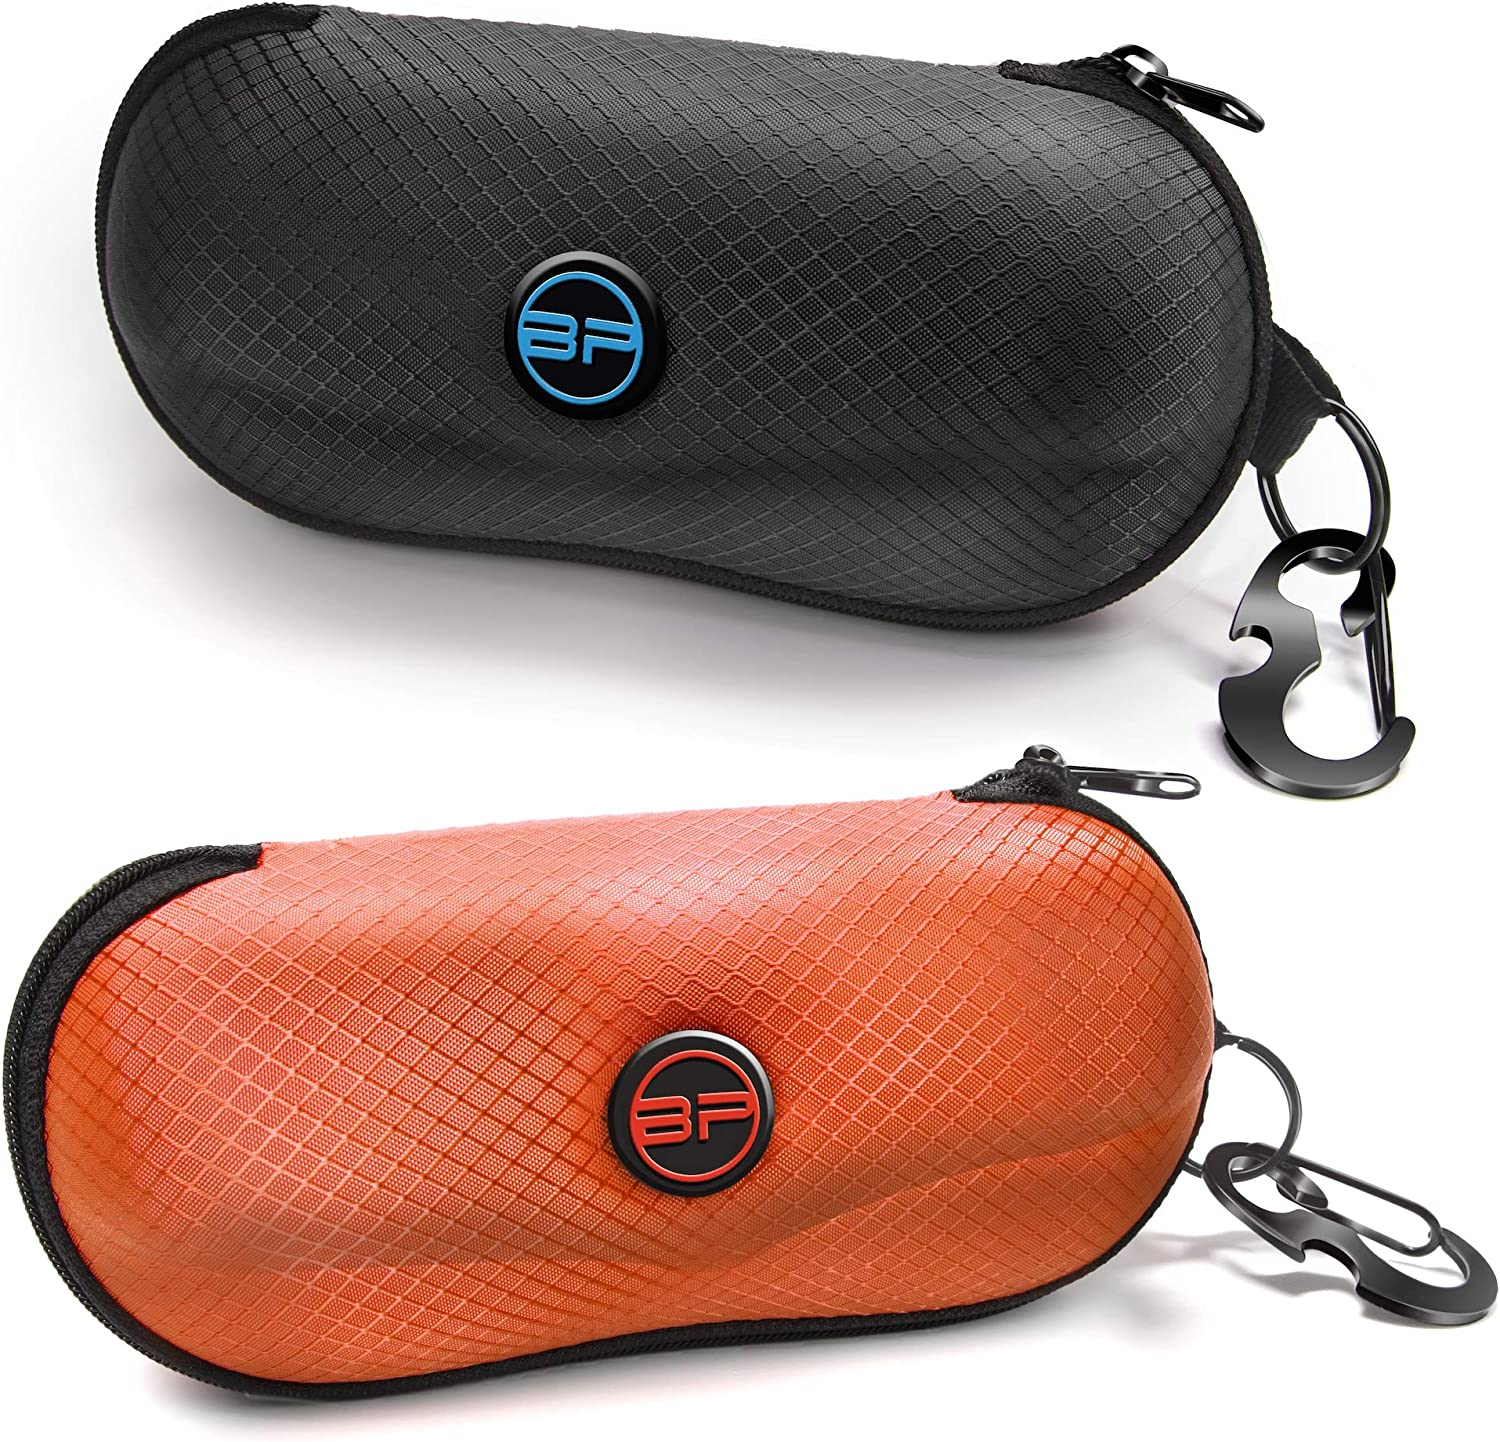 BLUPOND Sunglasses Case Semi Hard 2021 autumn and winter new EVA Shell Metal with Hanging Max 71% OFF H